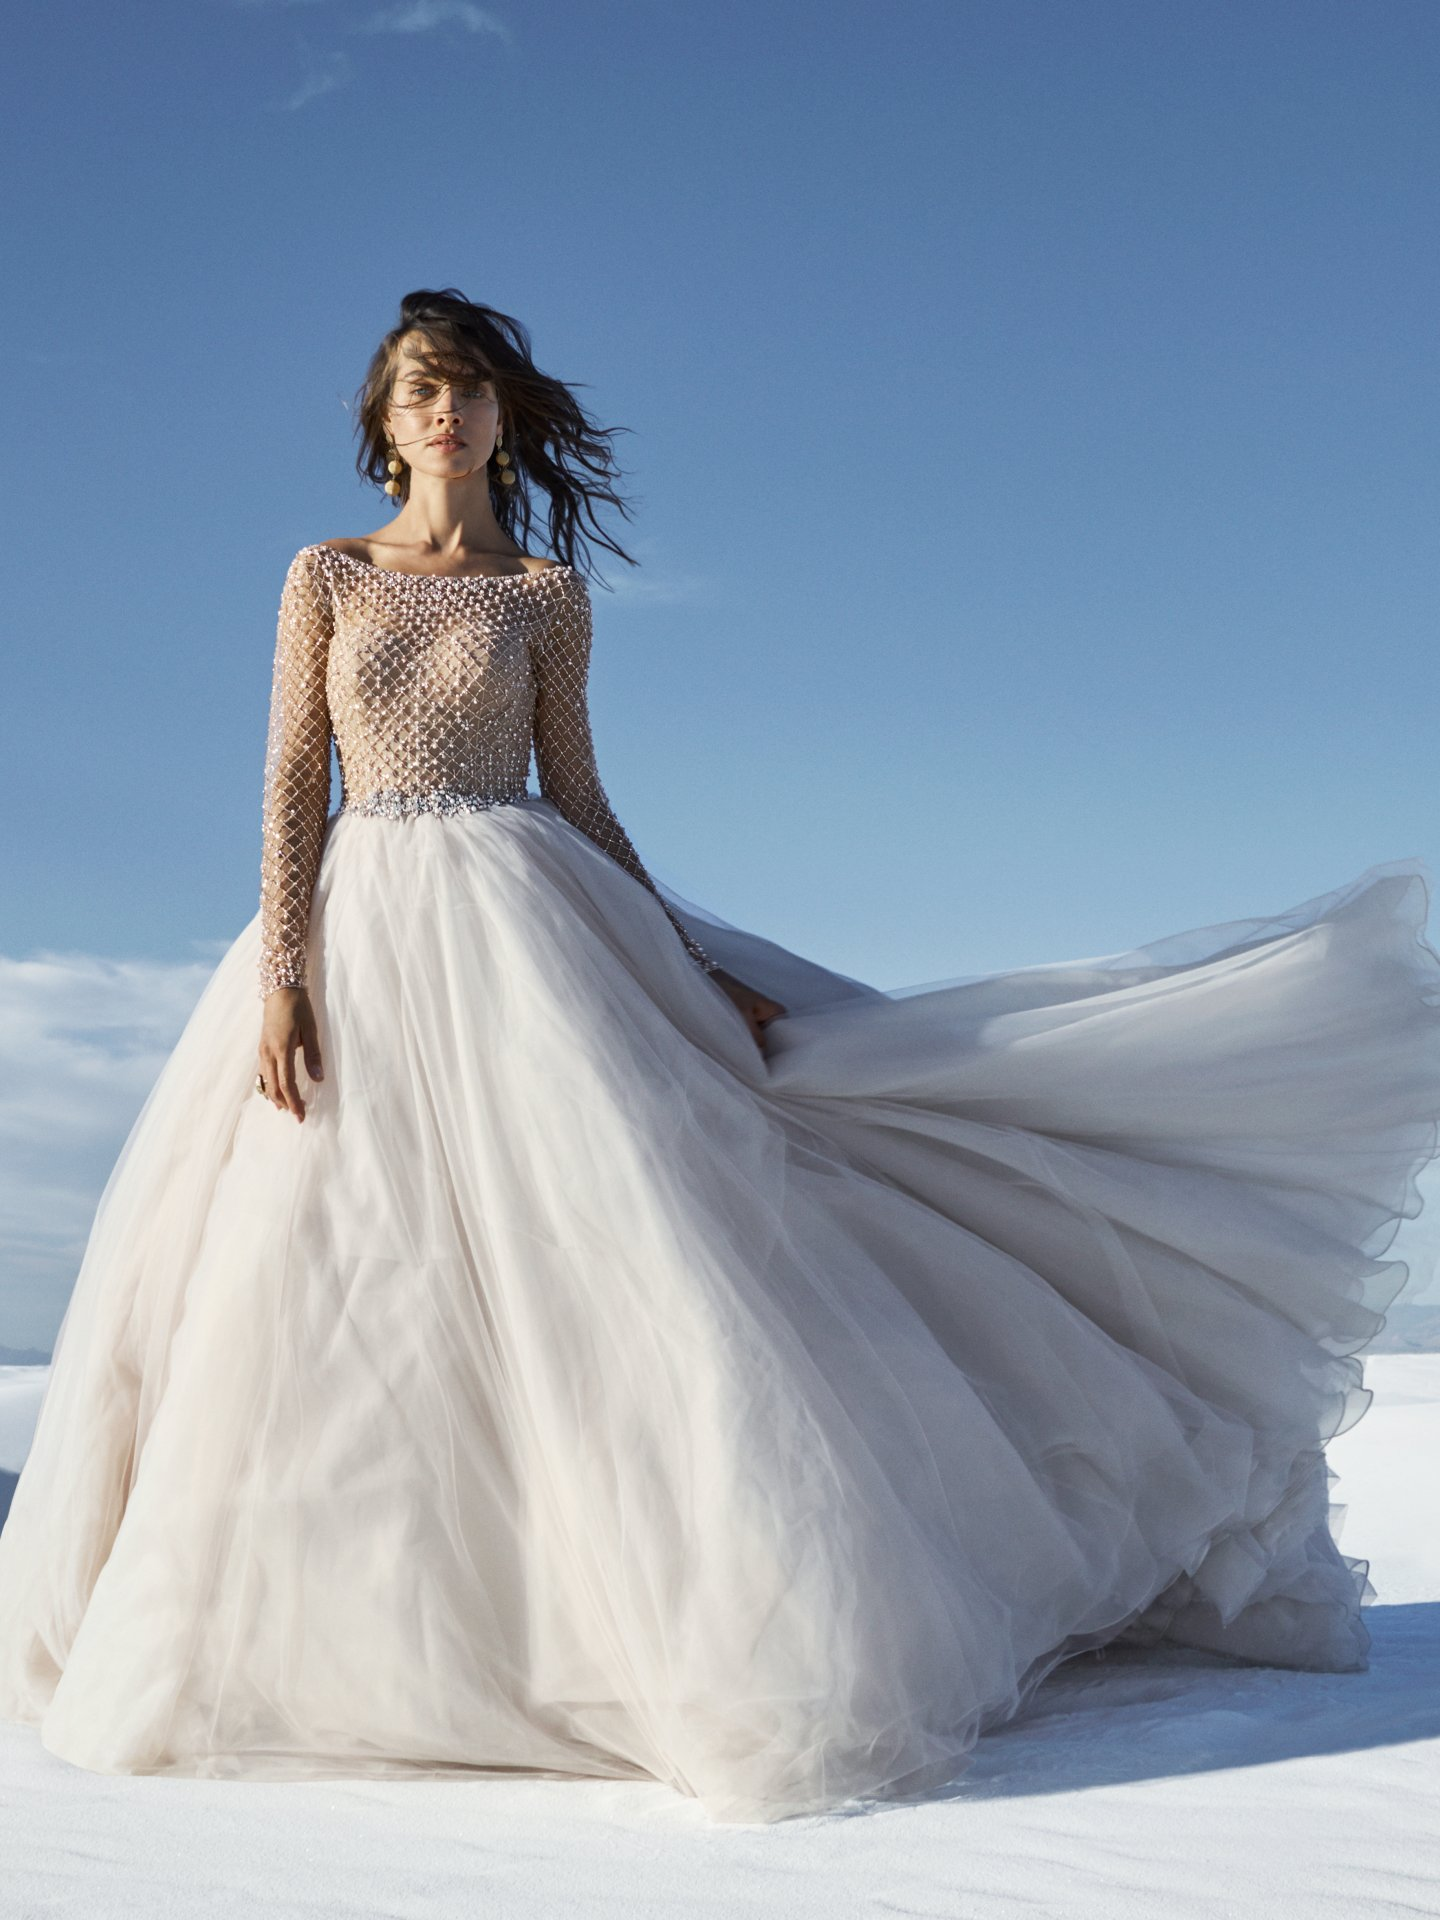 Regal and romantic, this sleeved princess wedding dress features a sheer bodice of geometric beading and Swarovski crystals, accenting the illusion bateau neckline, illusion long-sleeves. Fabulous Wedding Dresses With a Variety of Beaded Sleeves